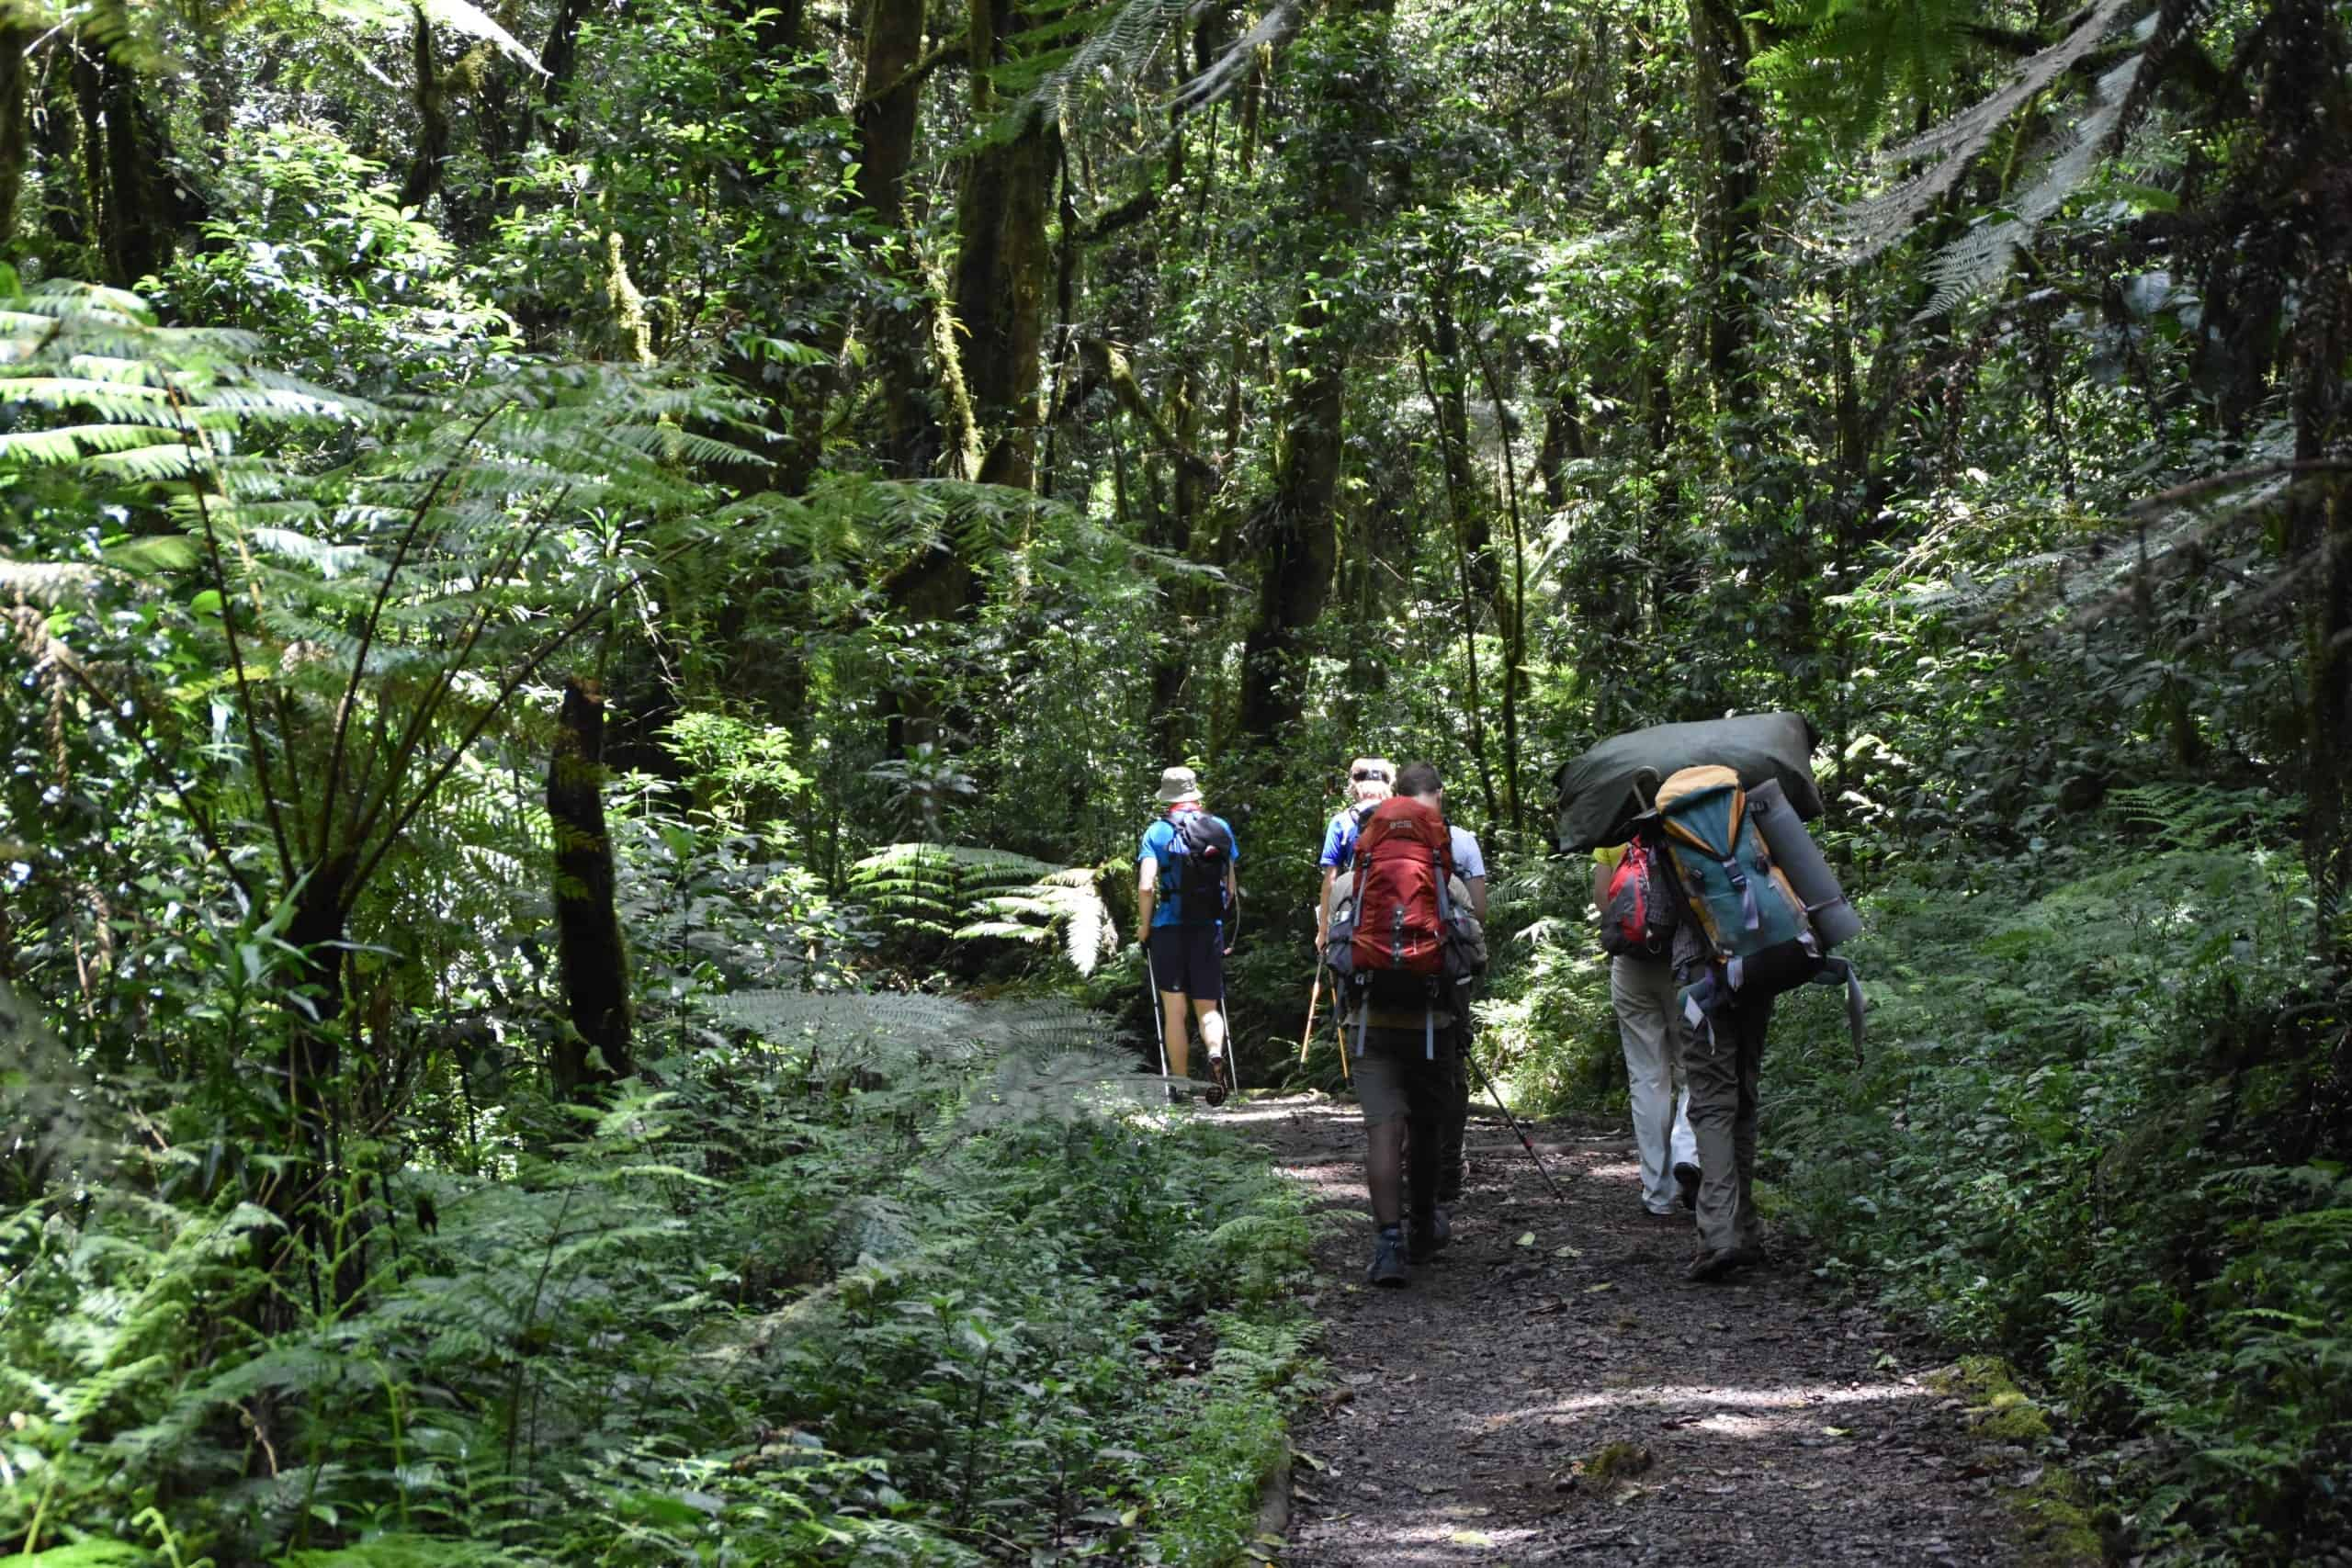 Four trekkers and their guide and a porter march through Kilimanjaro's forest zone with tree ferns lining the path